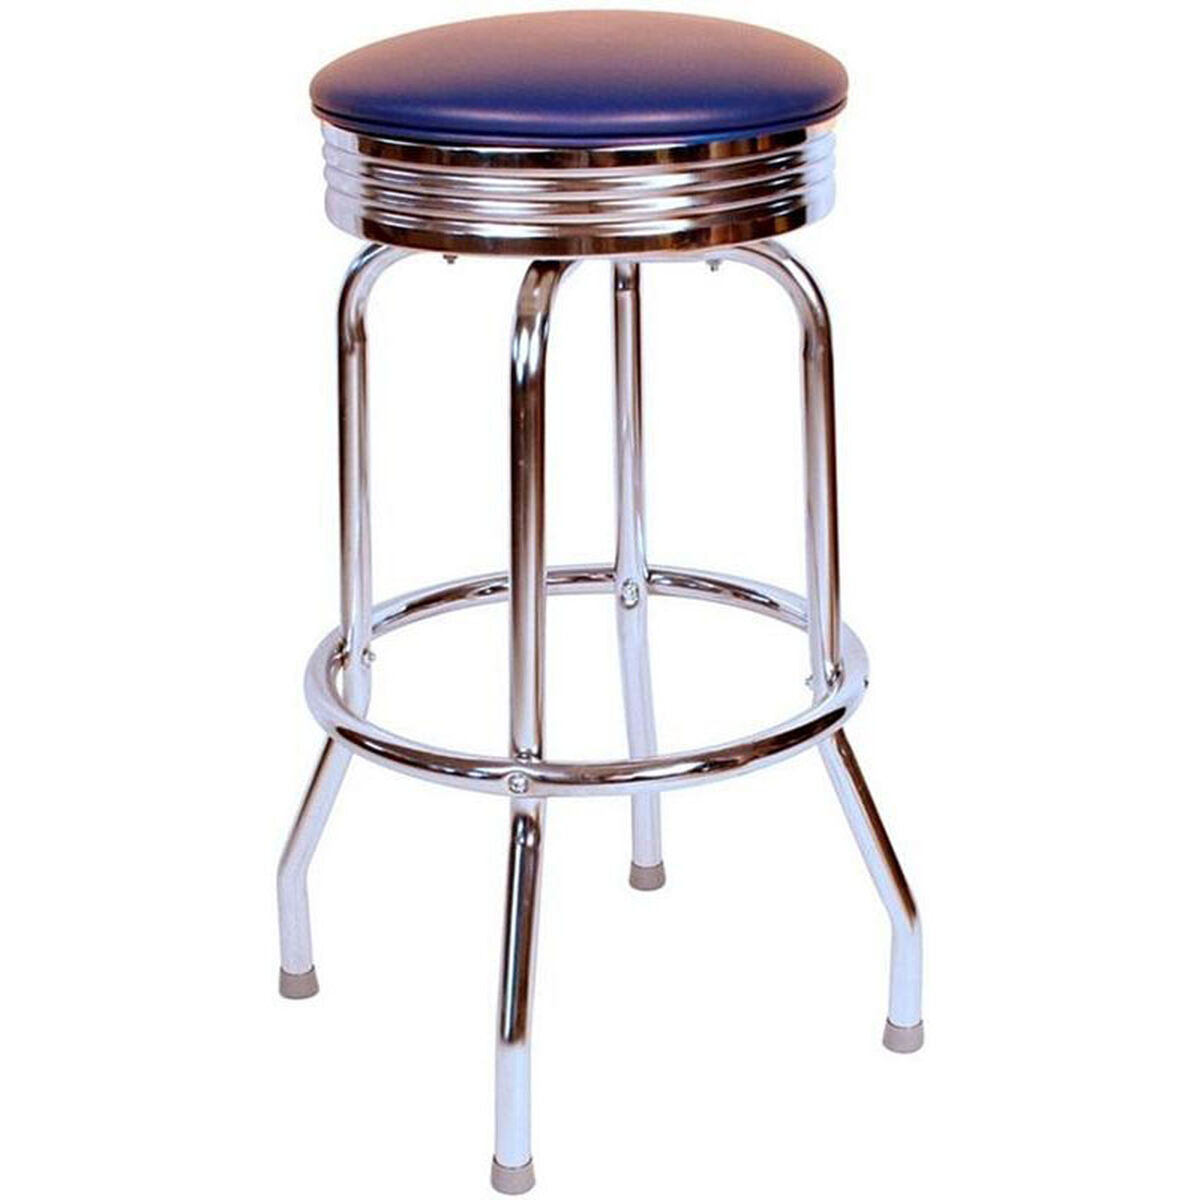 Blue Vinyl Swivel Barstool 0 19715blu24 Restaurantfurniture4lesscom